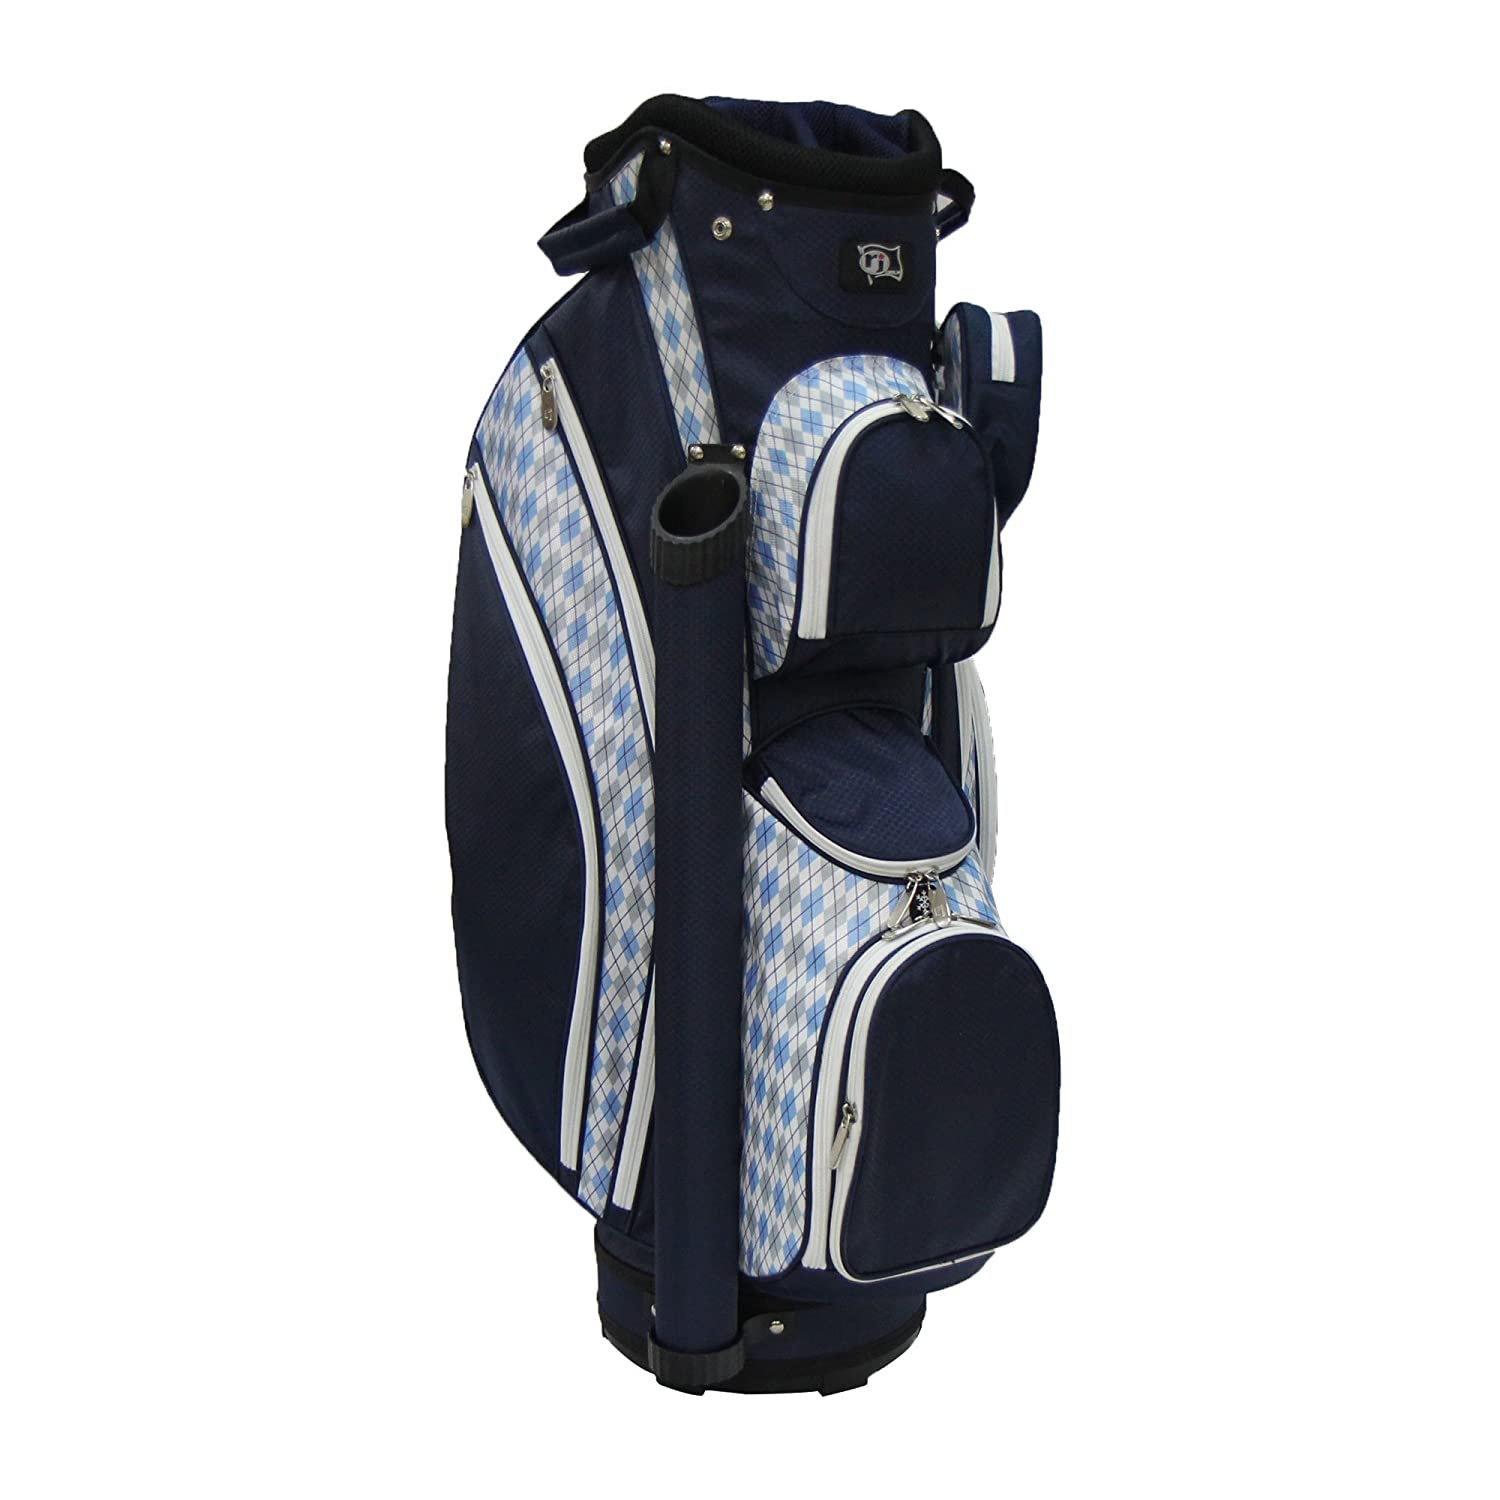 Amazon.com: RJ Sports Ladies lb-960 bolsa de Golf: Sports ...